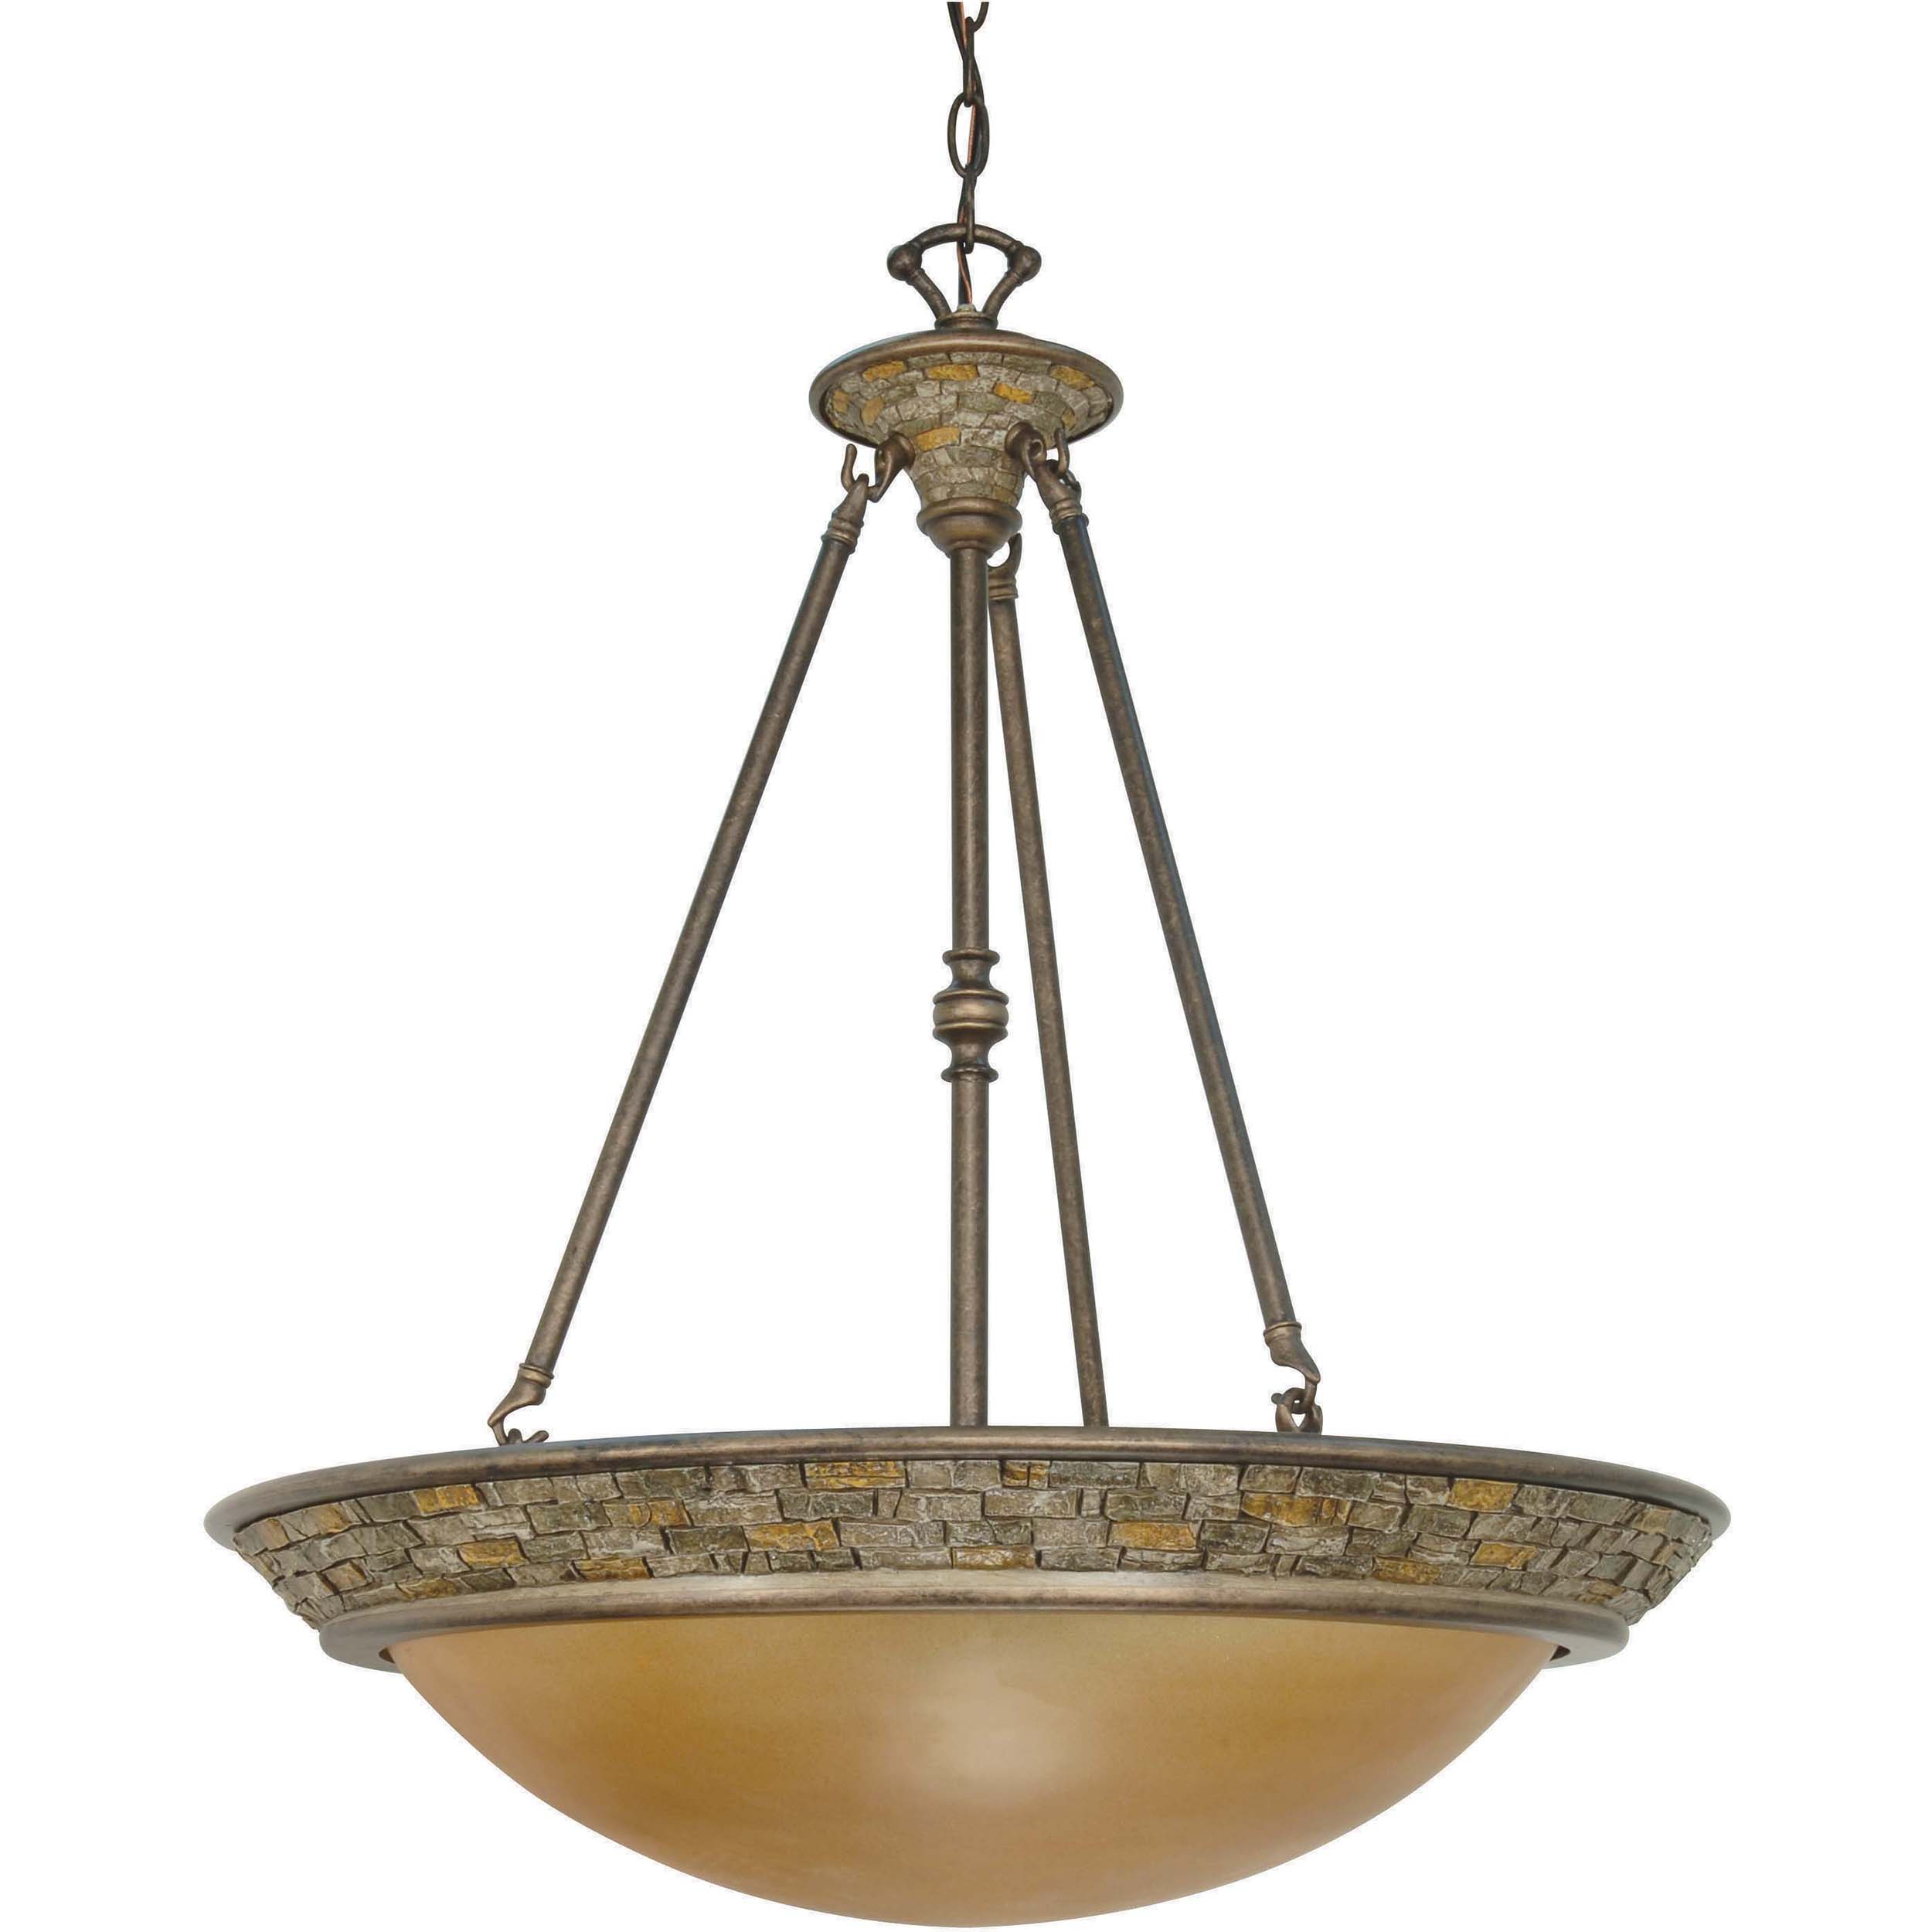 Rockport Tuscano 4 Light Pendant Dorado Bronze with Sepia Colored Glass Shades - Thumbnail 0